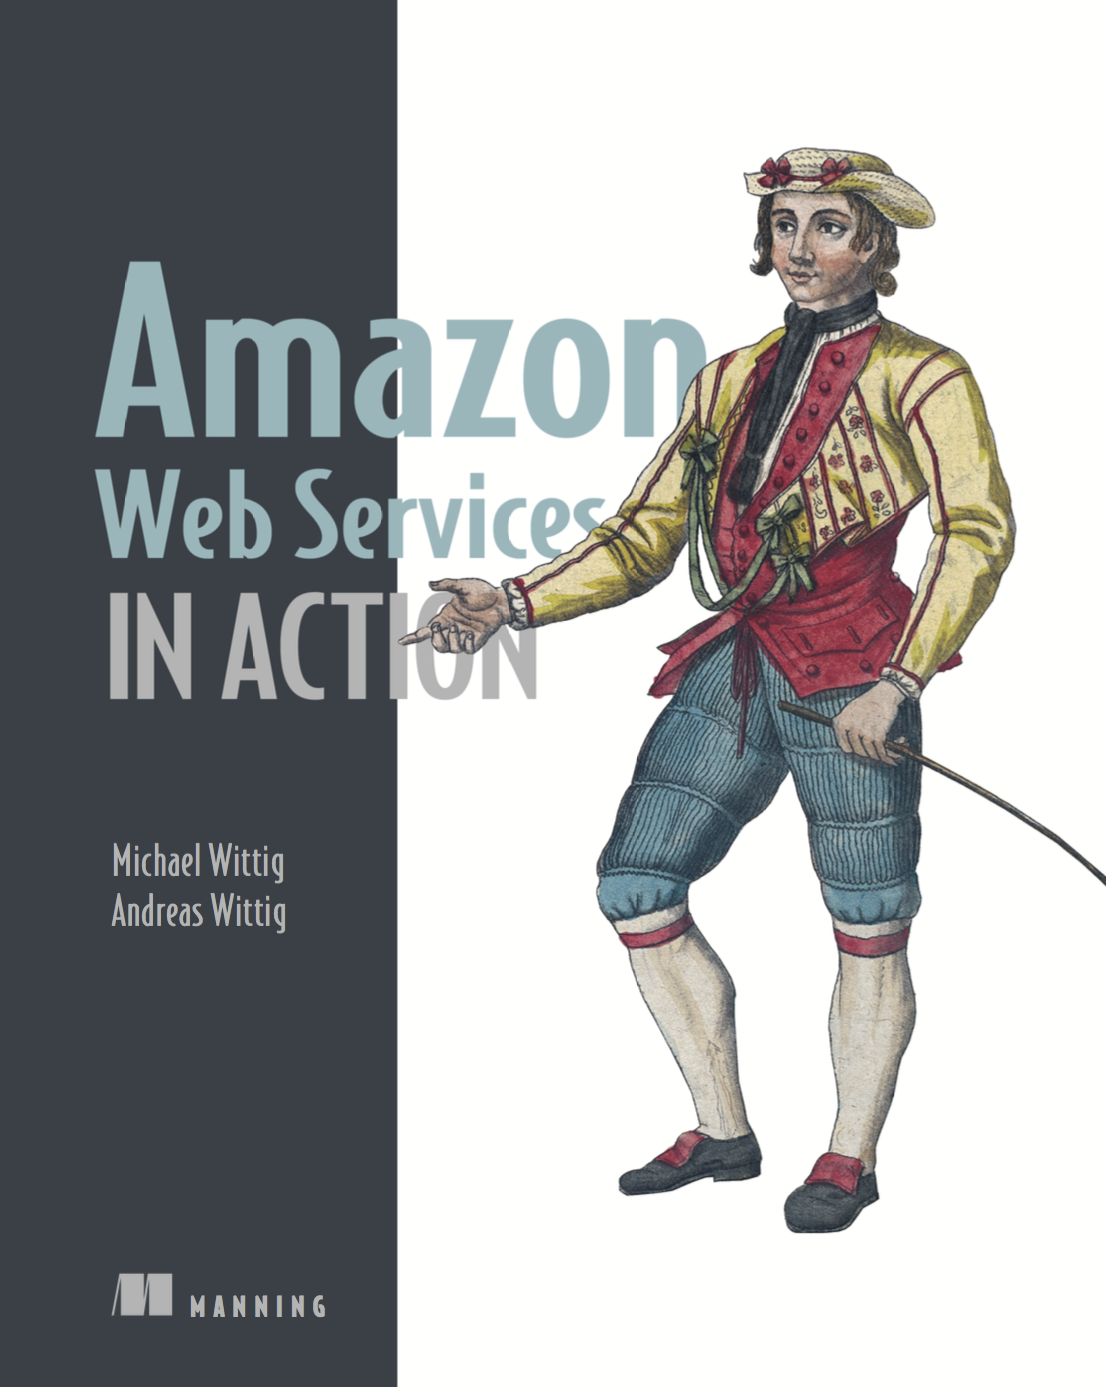 Amazon Web Services in Action book cover